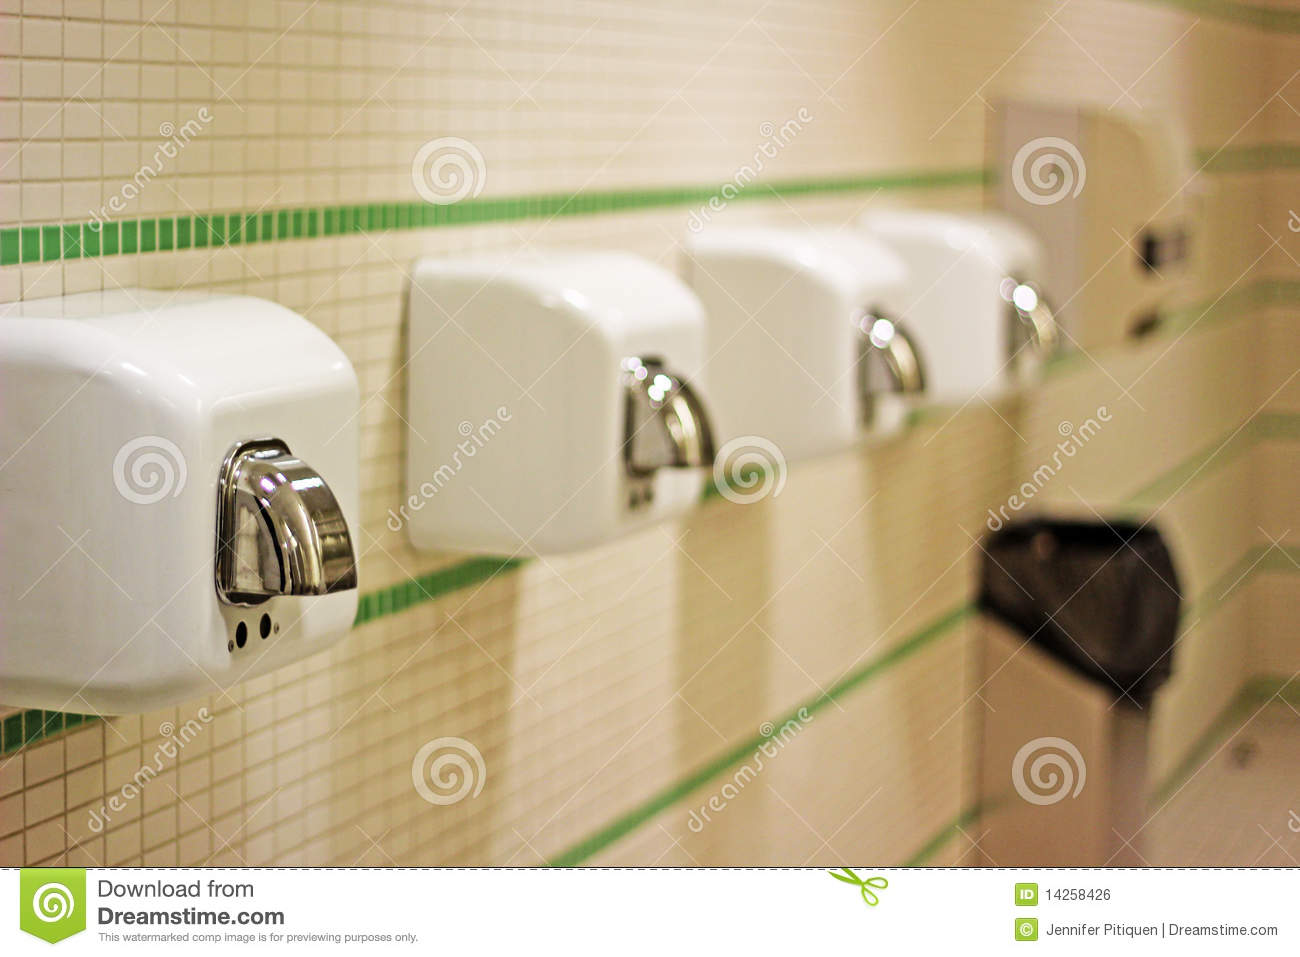 Use Hand Dryers Instead Of Paper Towels In The Bathroom Cut Down - Bathroom hand dryer germs